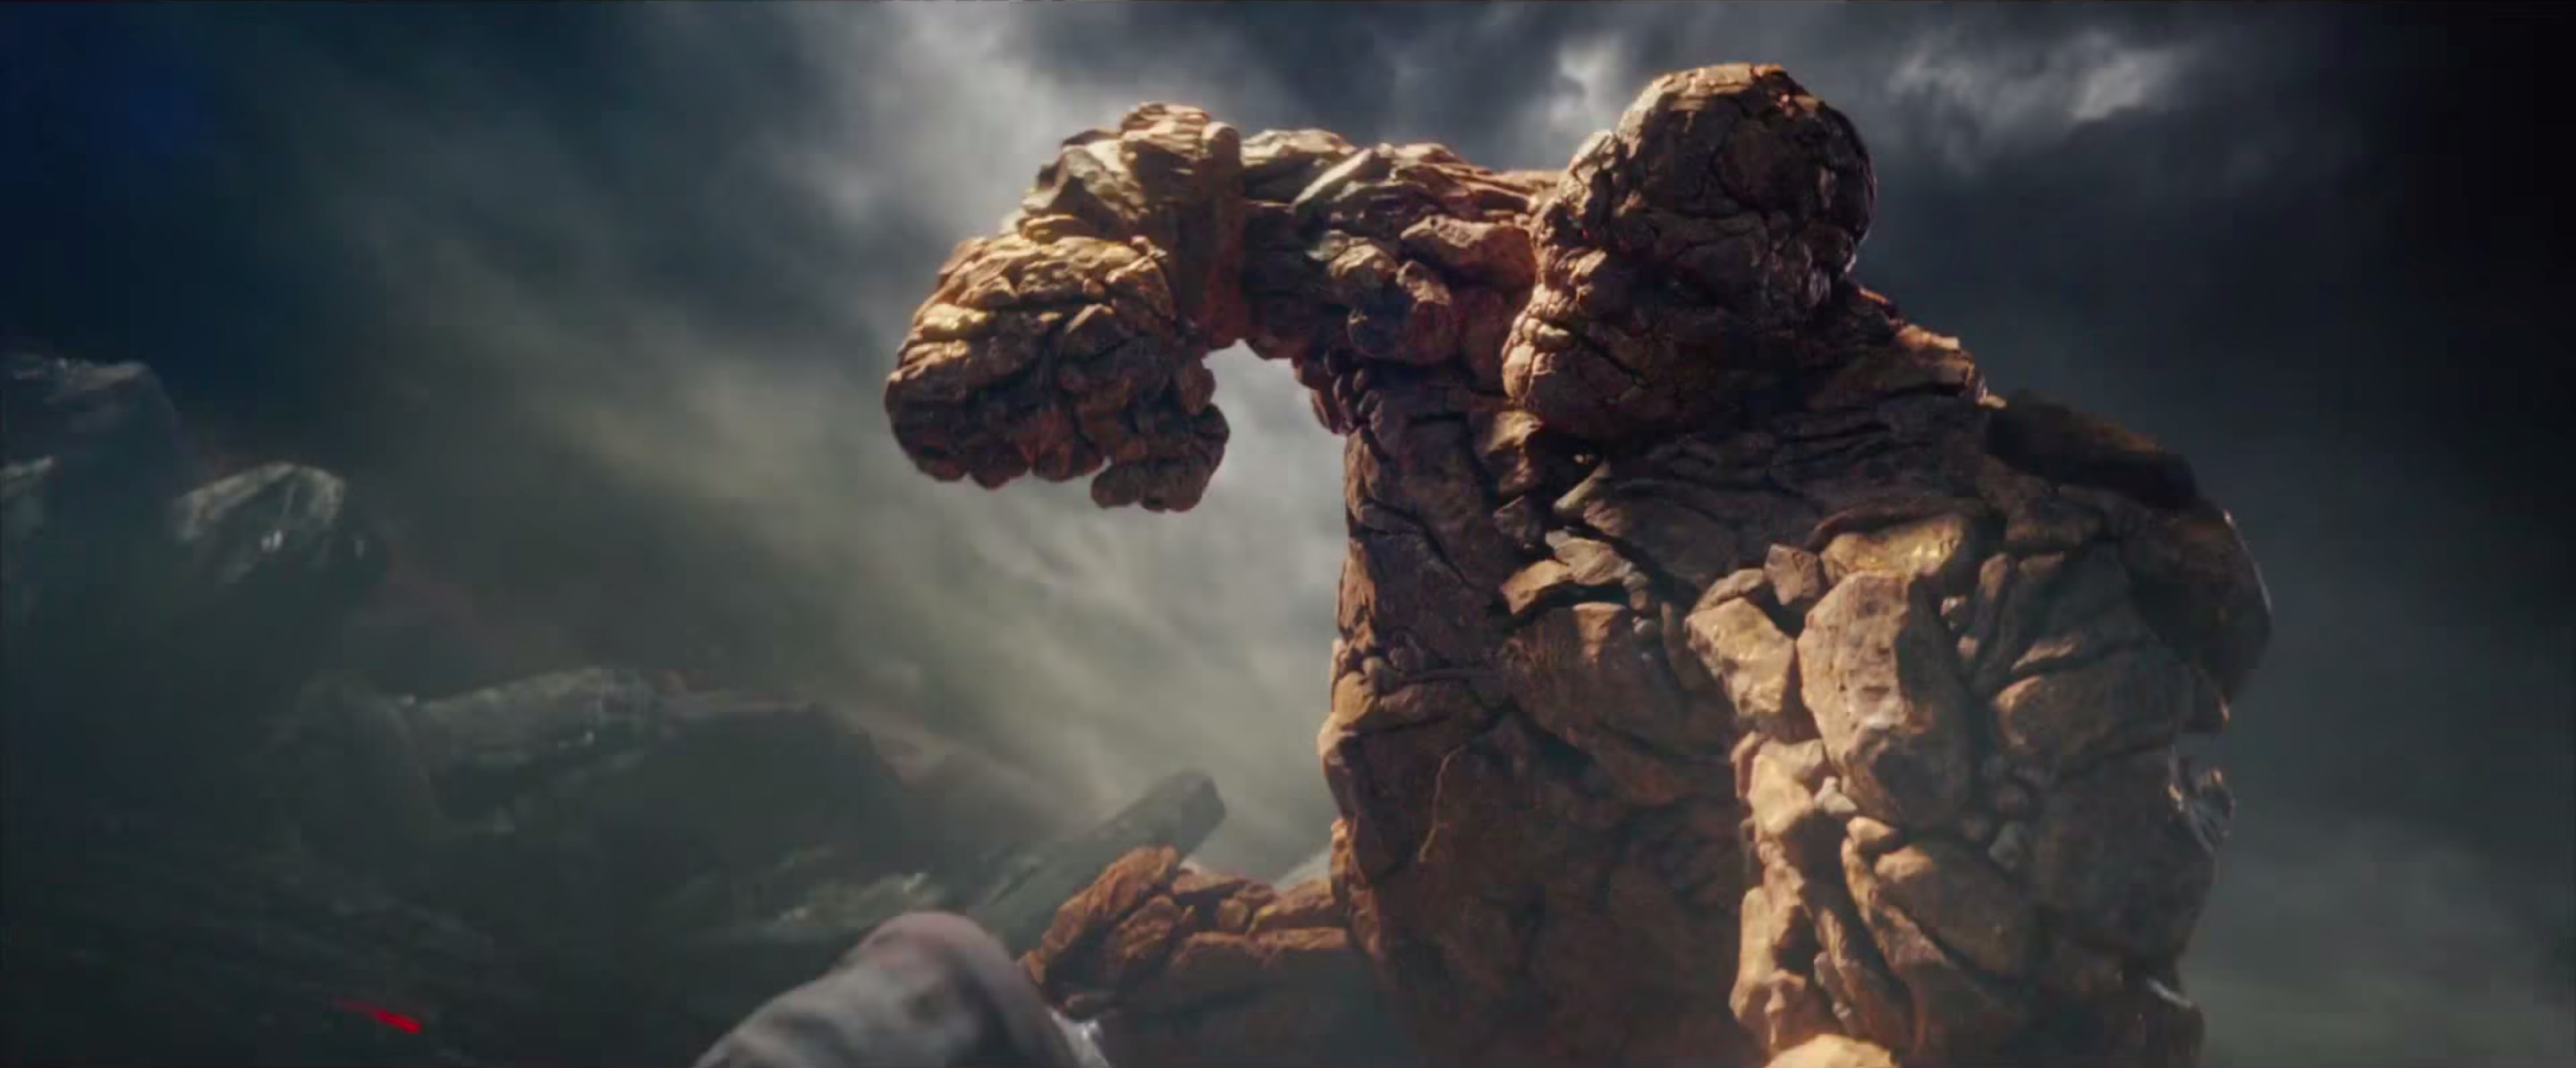 Fantastic_Four-Movie-HD-Wallpapers-3